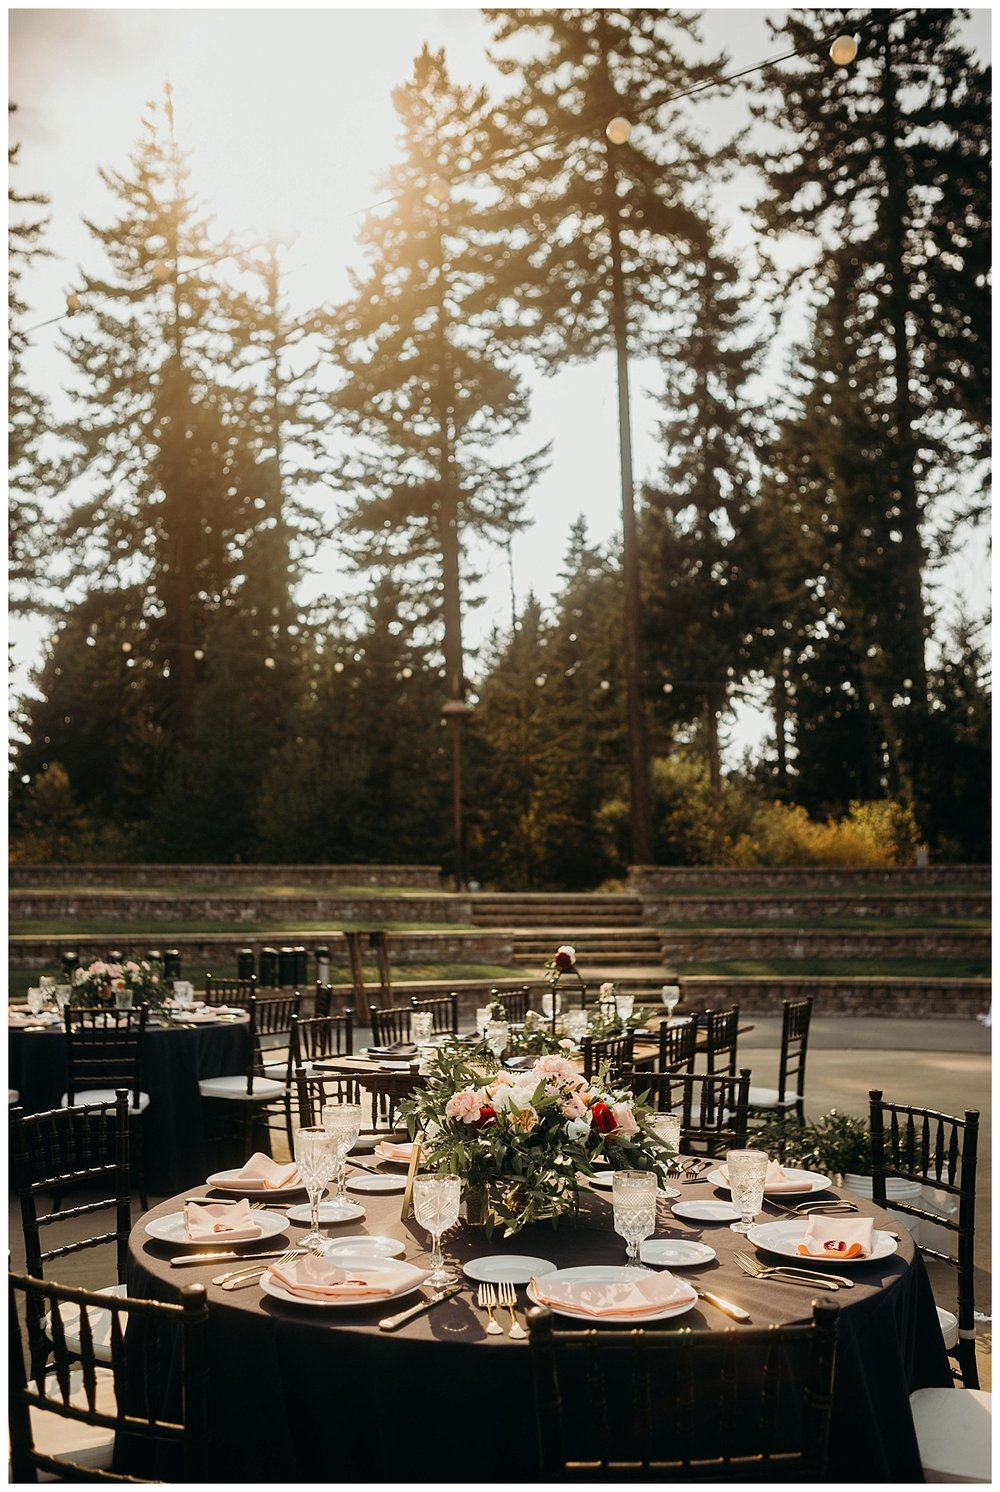 Bixby+Pine-PNW-Wedding-Planners-And-Designers_1469.jpg